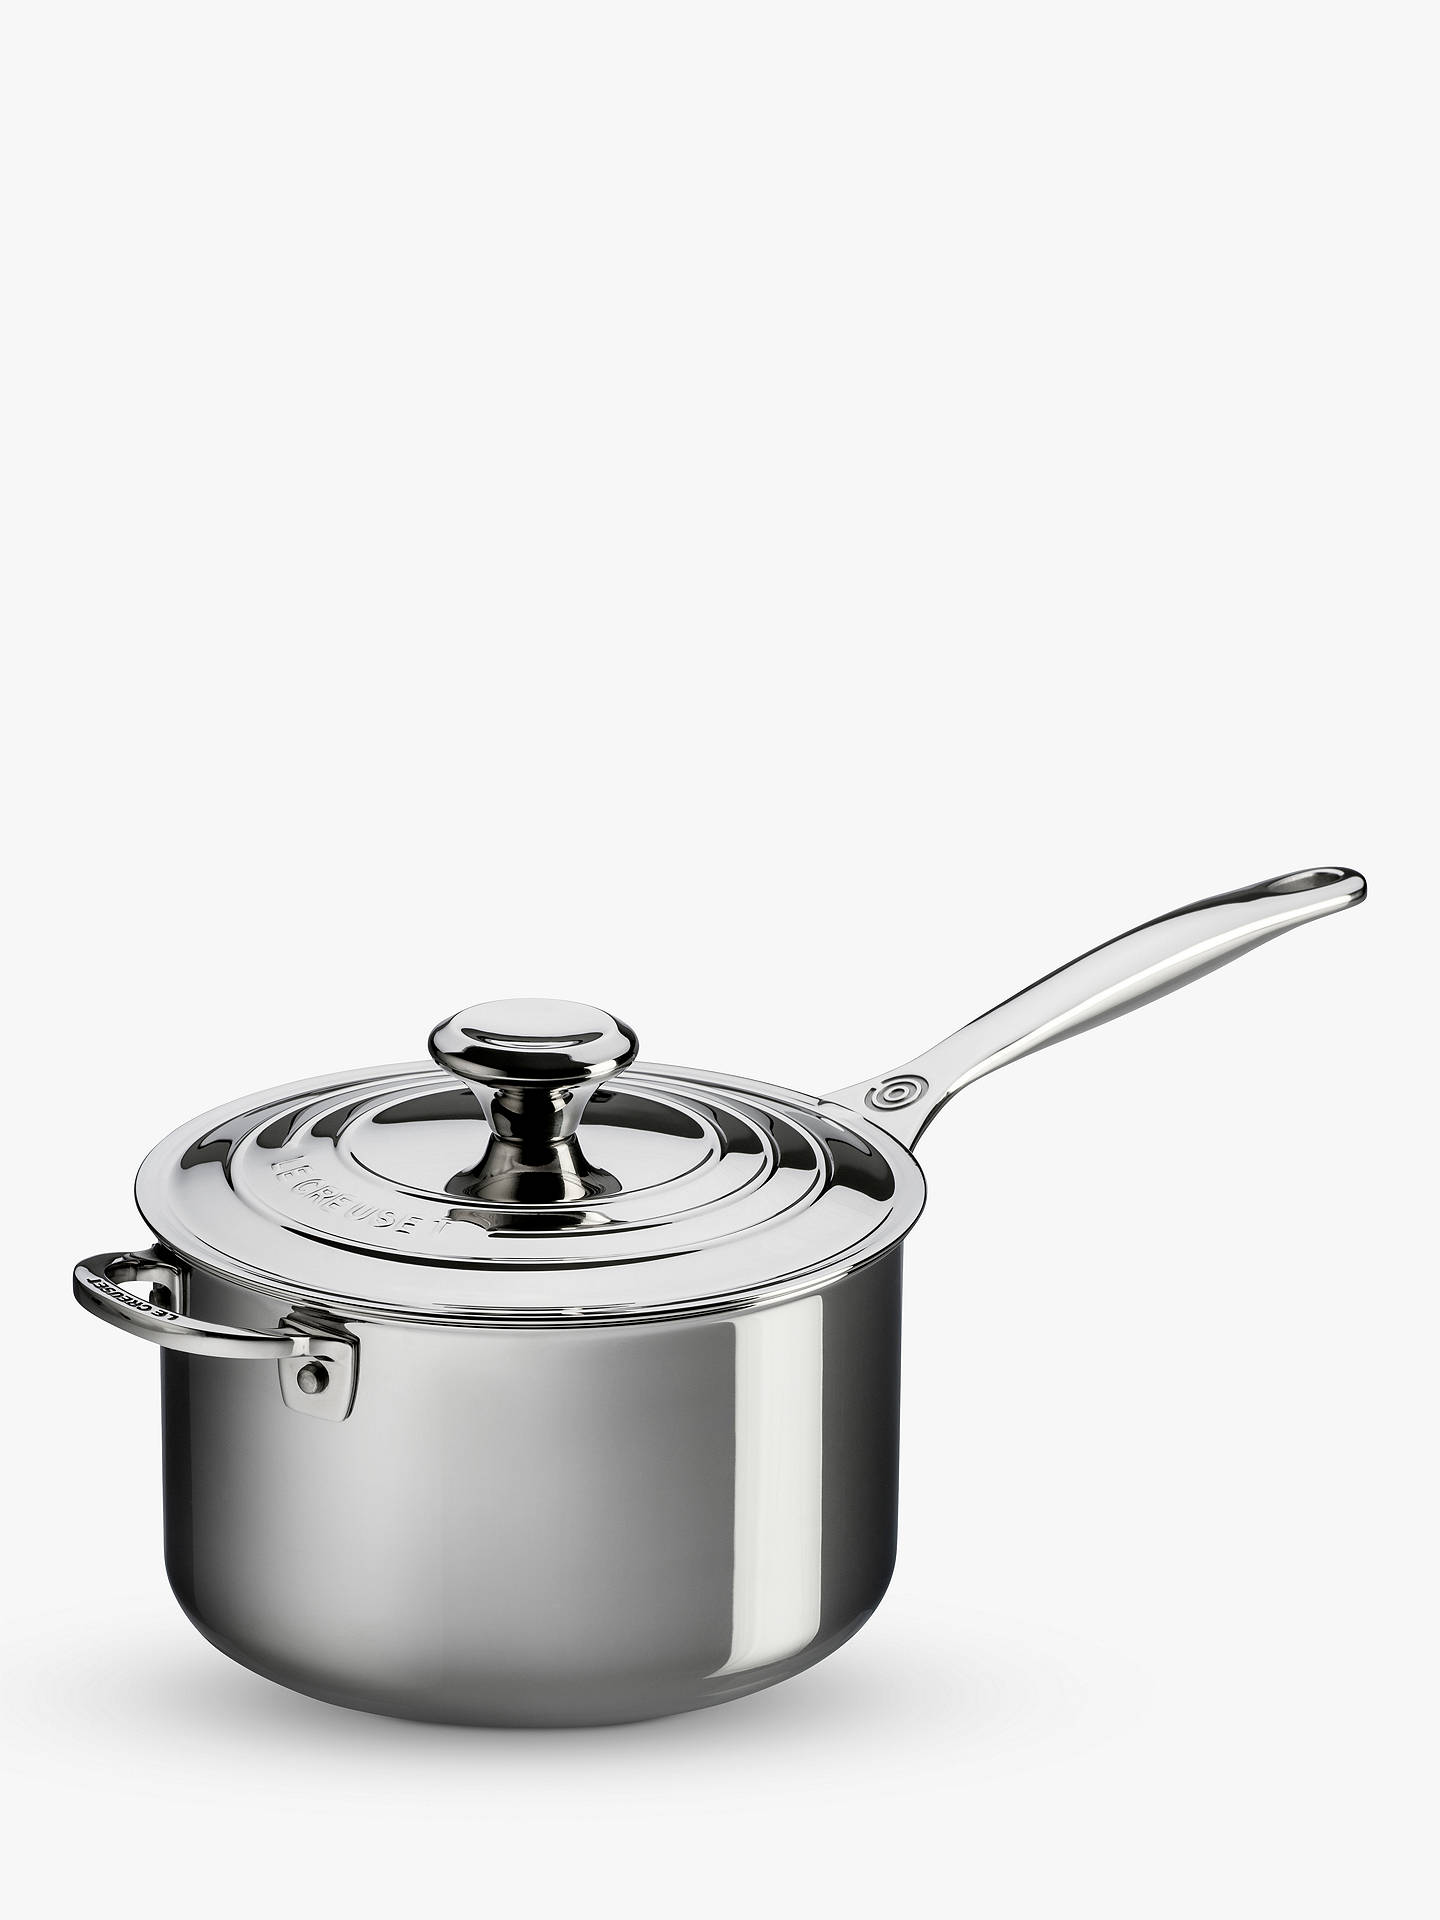 Buy Le Creuset Signature 3-Ply Stainless Steel Saucepan, Dia.16cm Online at johnlewis.com